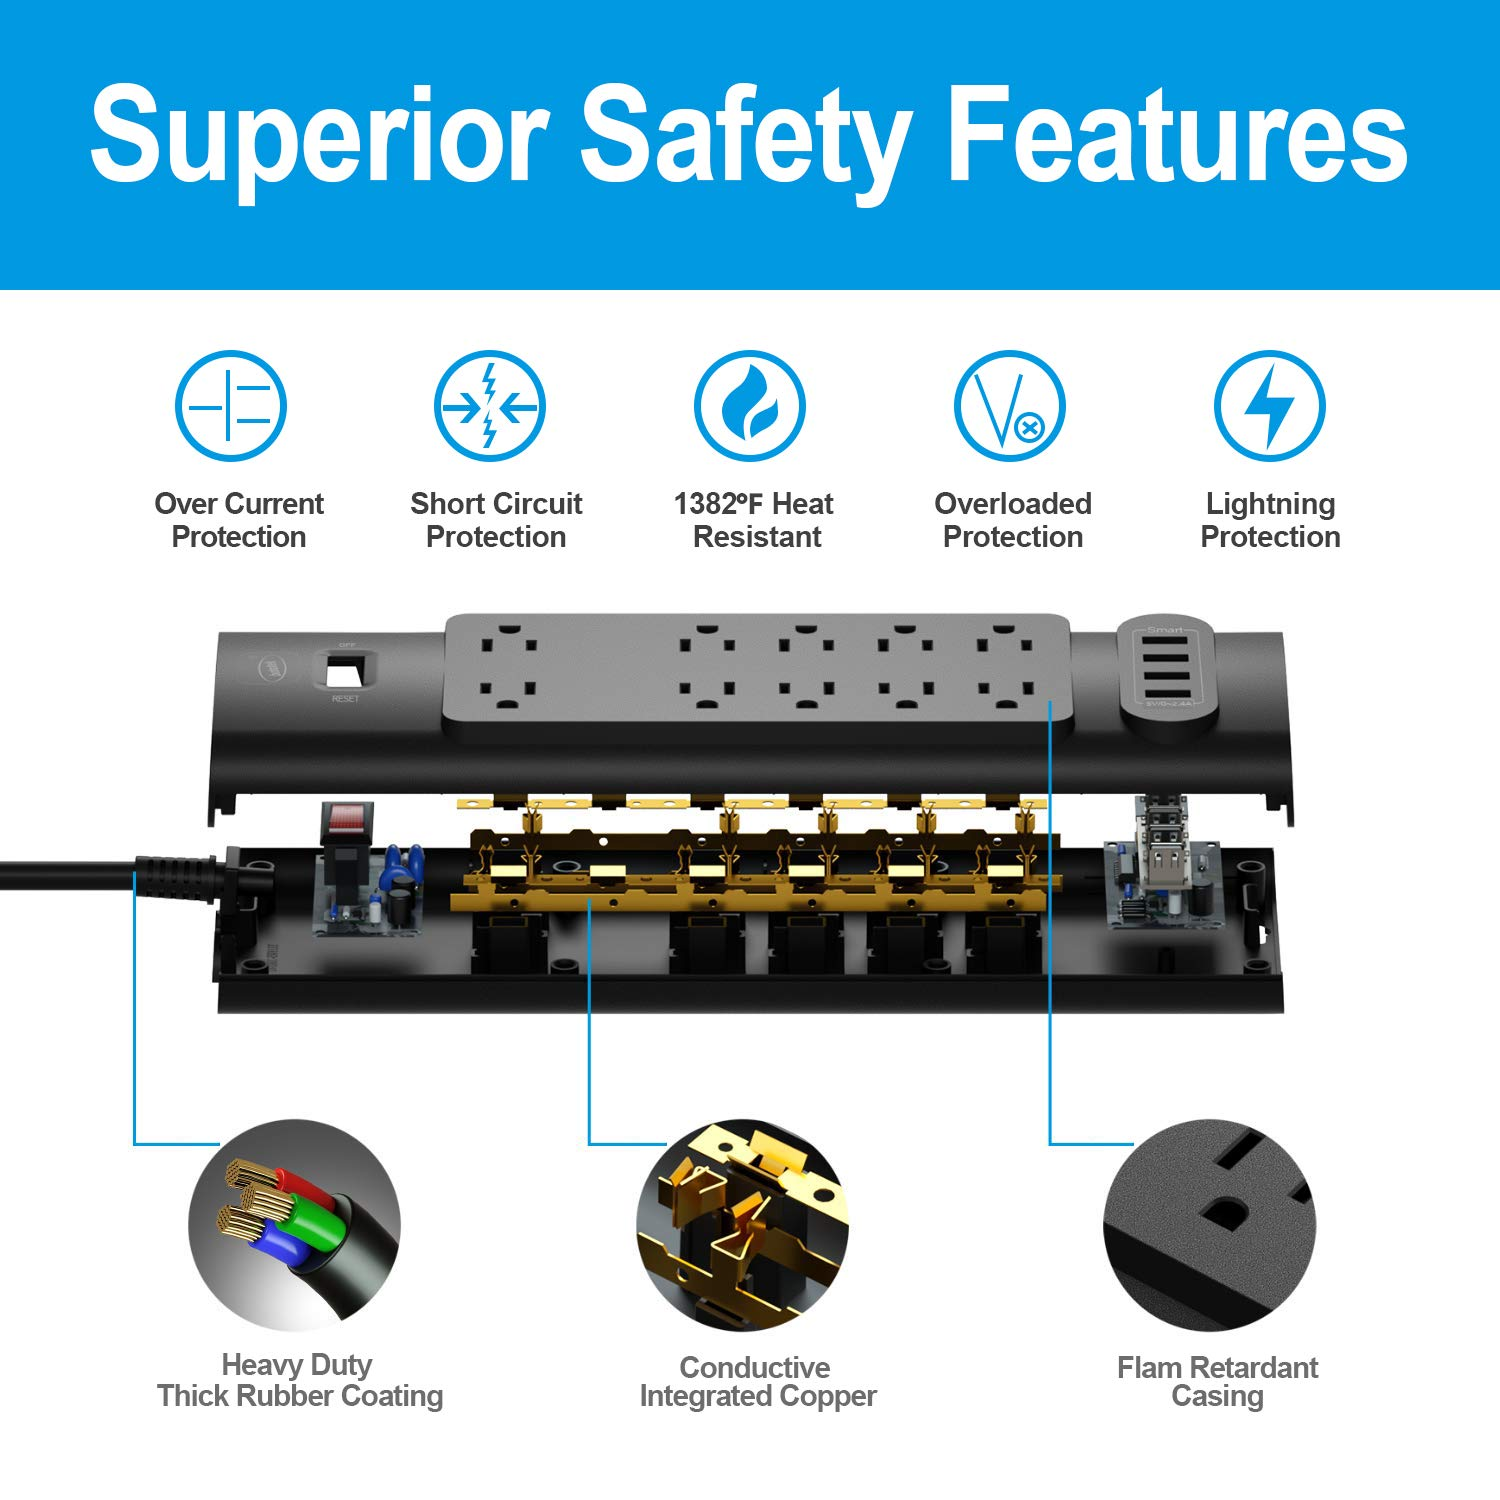 Power Strip, Bototek Surge Protector with 10 AC Outlets and 4 USB Charging Ports,1625W/13A, 2100 Joules, 6 Feet Long Extension Cord for Smartphone Tablets Home,Office, Hotel- Black